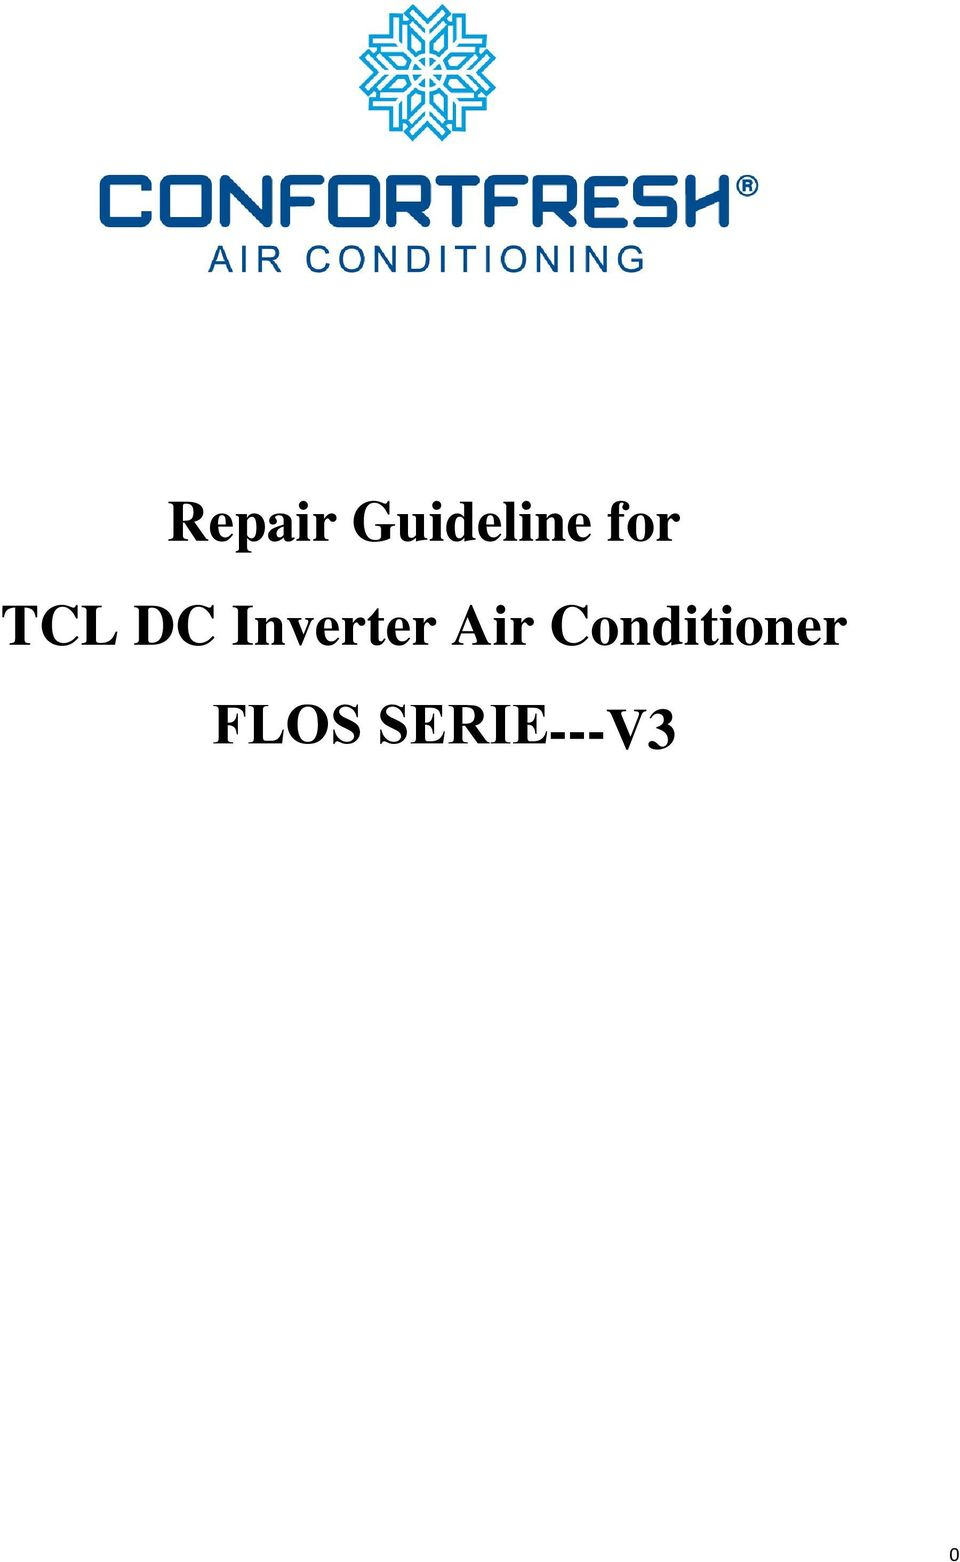 repair guideline for tcl dc inverter air conditioner pdf rh docplayer net  Auto Air Conditioner Wiring Diagrams Basic Air Conditioner Wiring Diagram